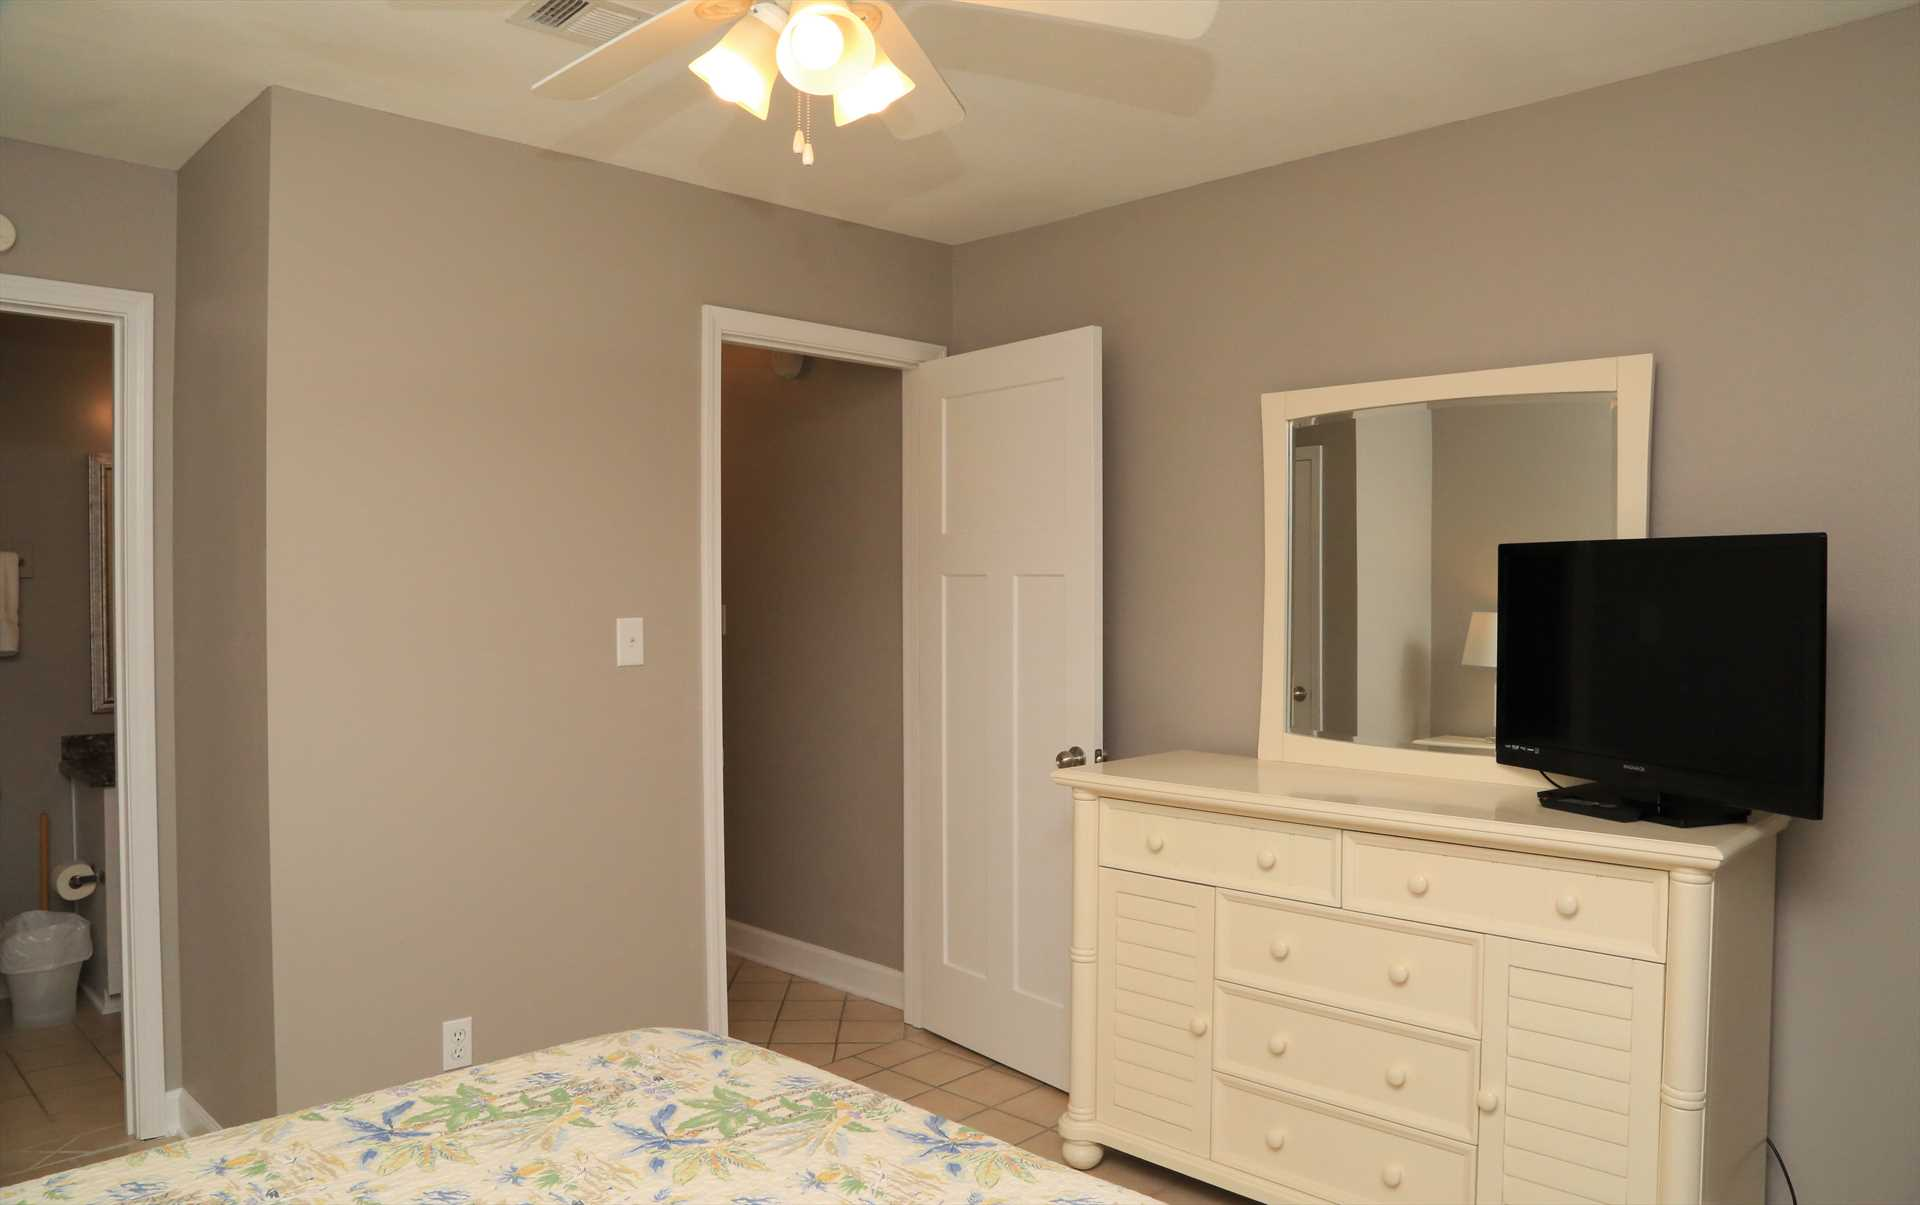 The master bedroom was reconfigured to create access to the